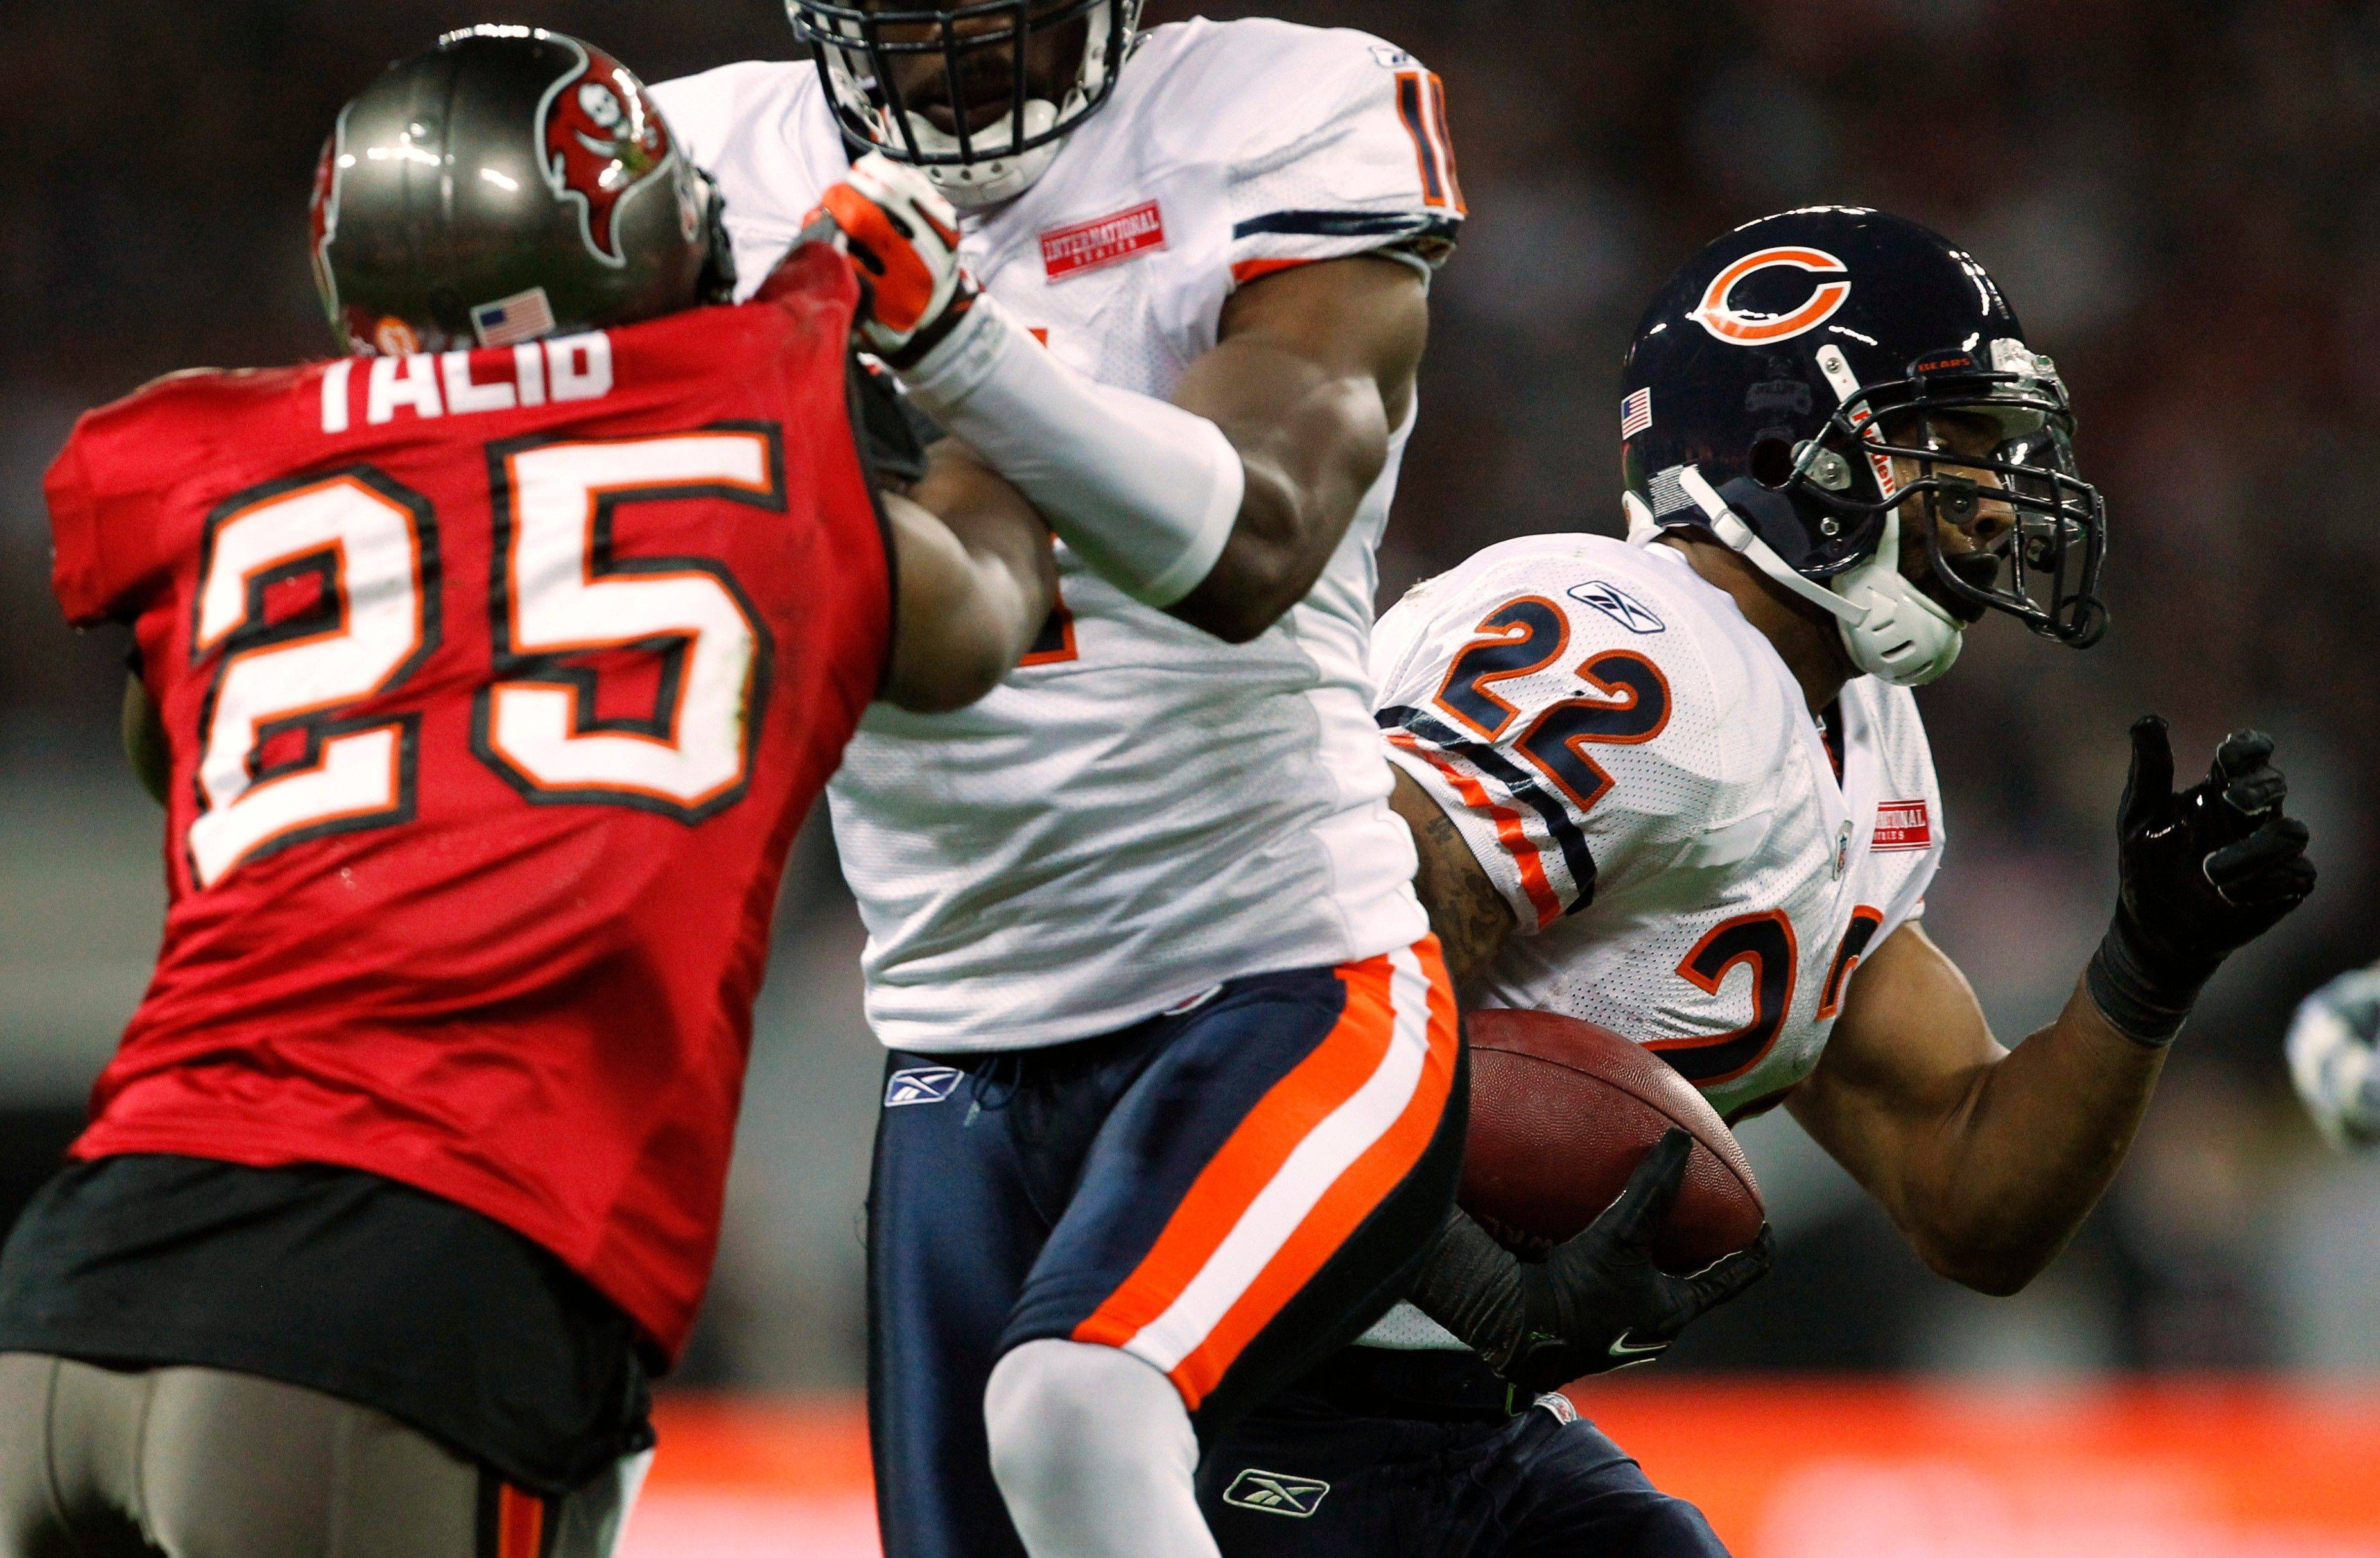 Chicago Bears running back Matt Forte breaks away to score a 32-yard touchdown during the first half.